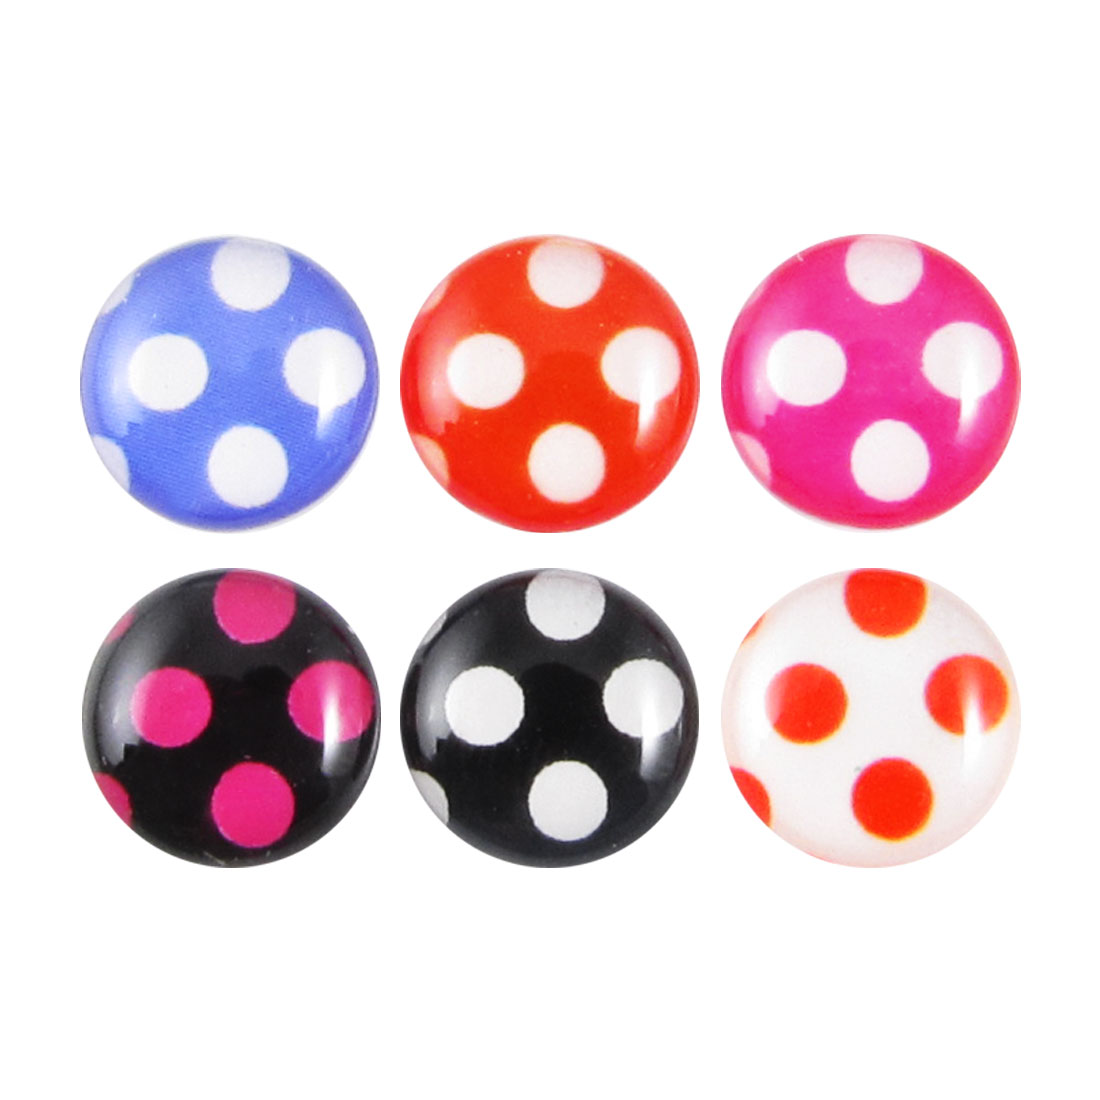 Polka Dots Home Button Stickers 6 in 1 for Cell Phone